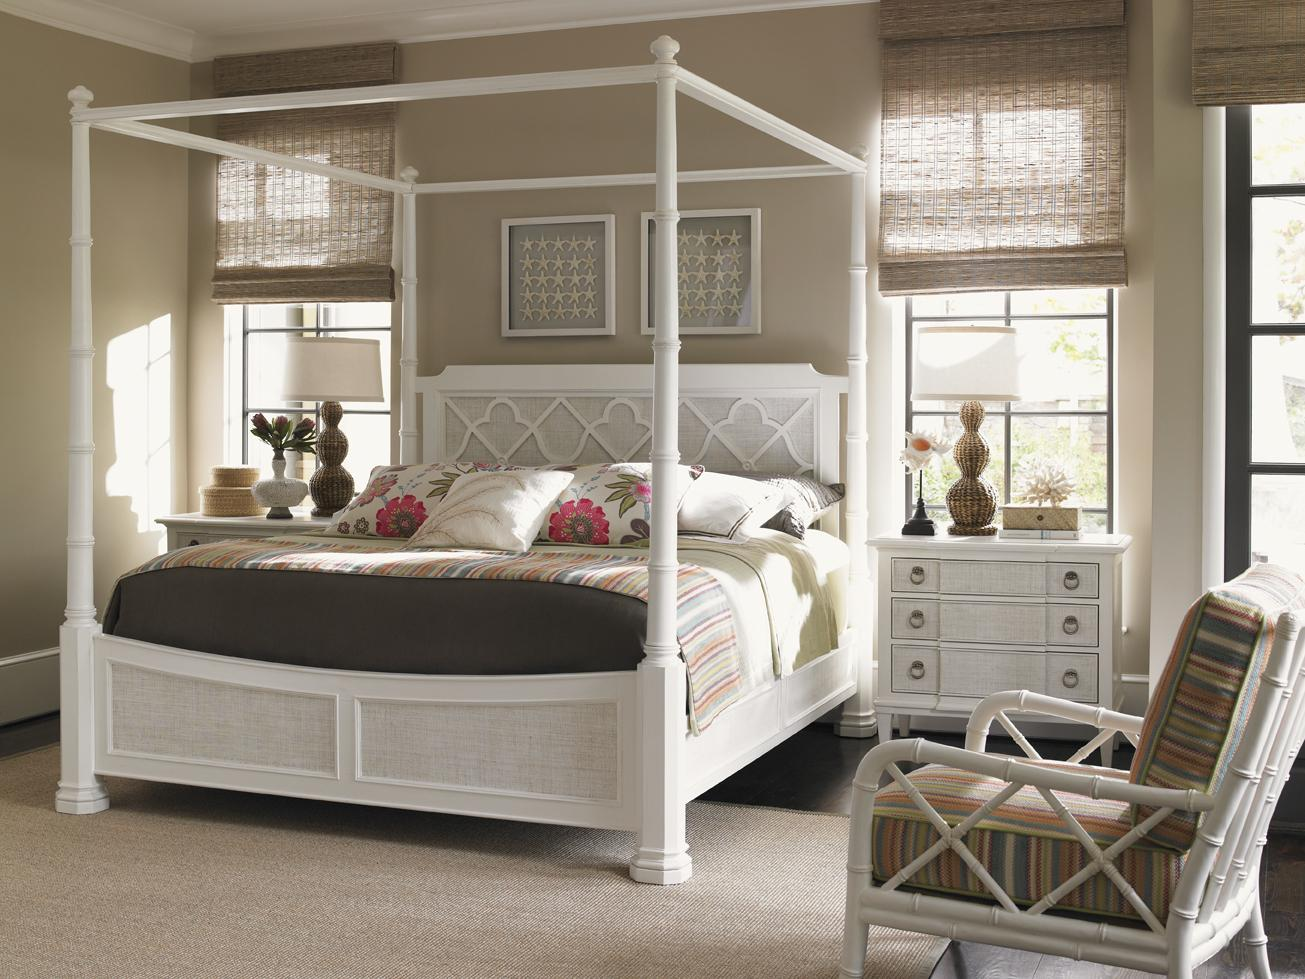 Ivory Key King Bedroom Group by Tommy Bahama Home at Baer's Furniture